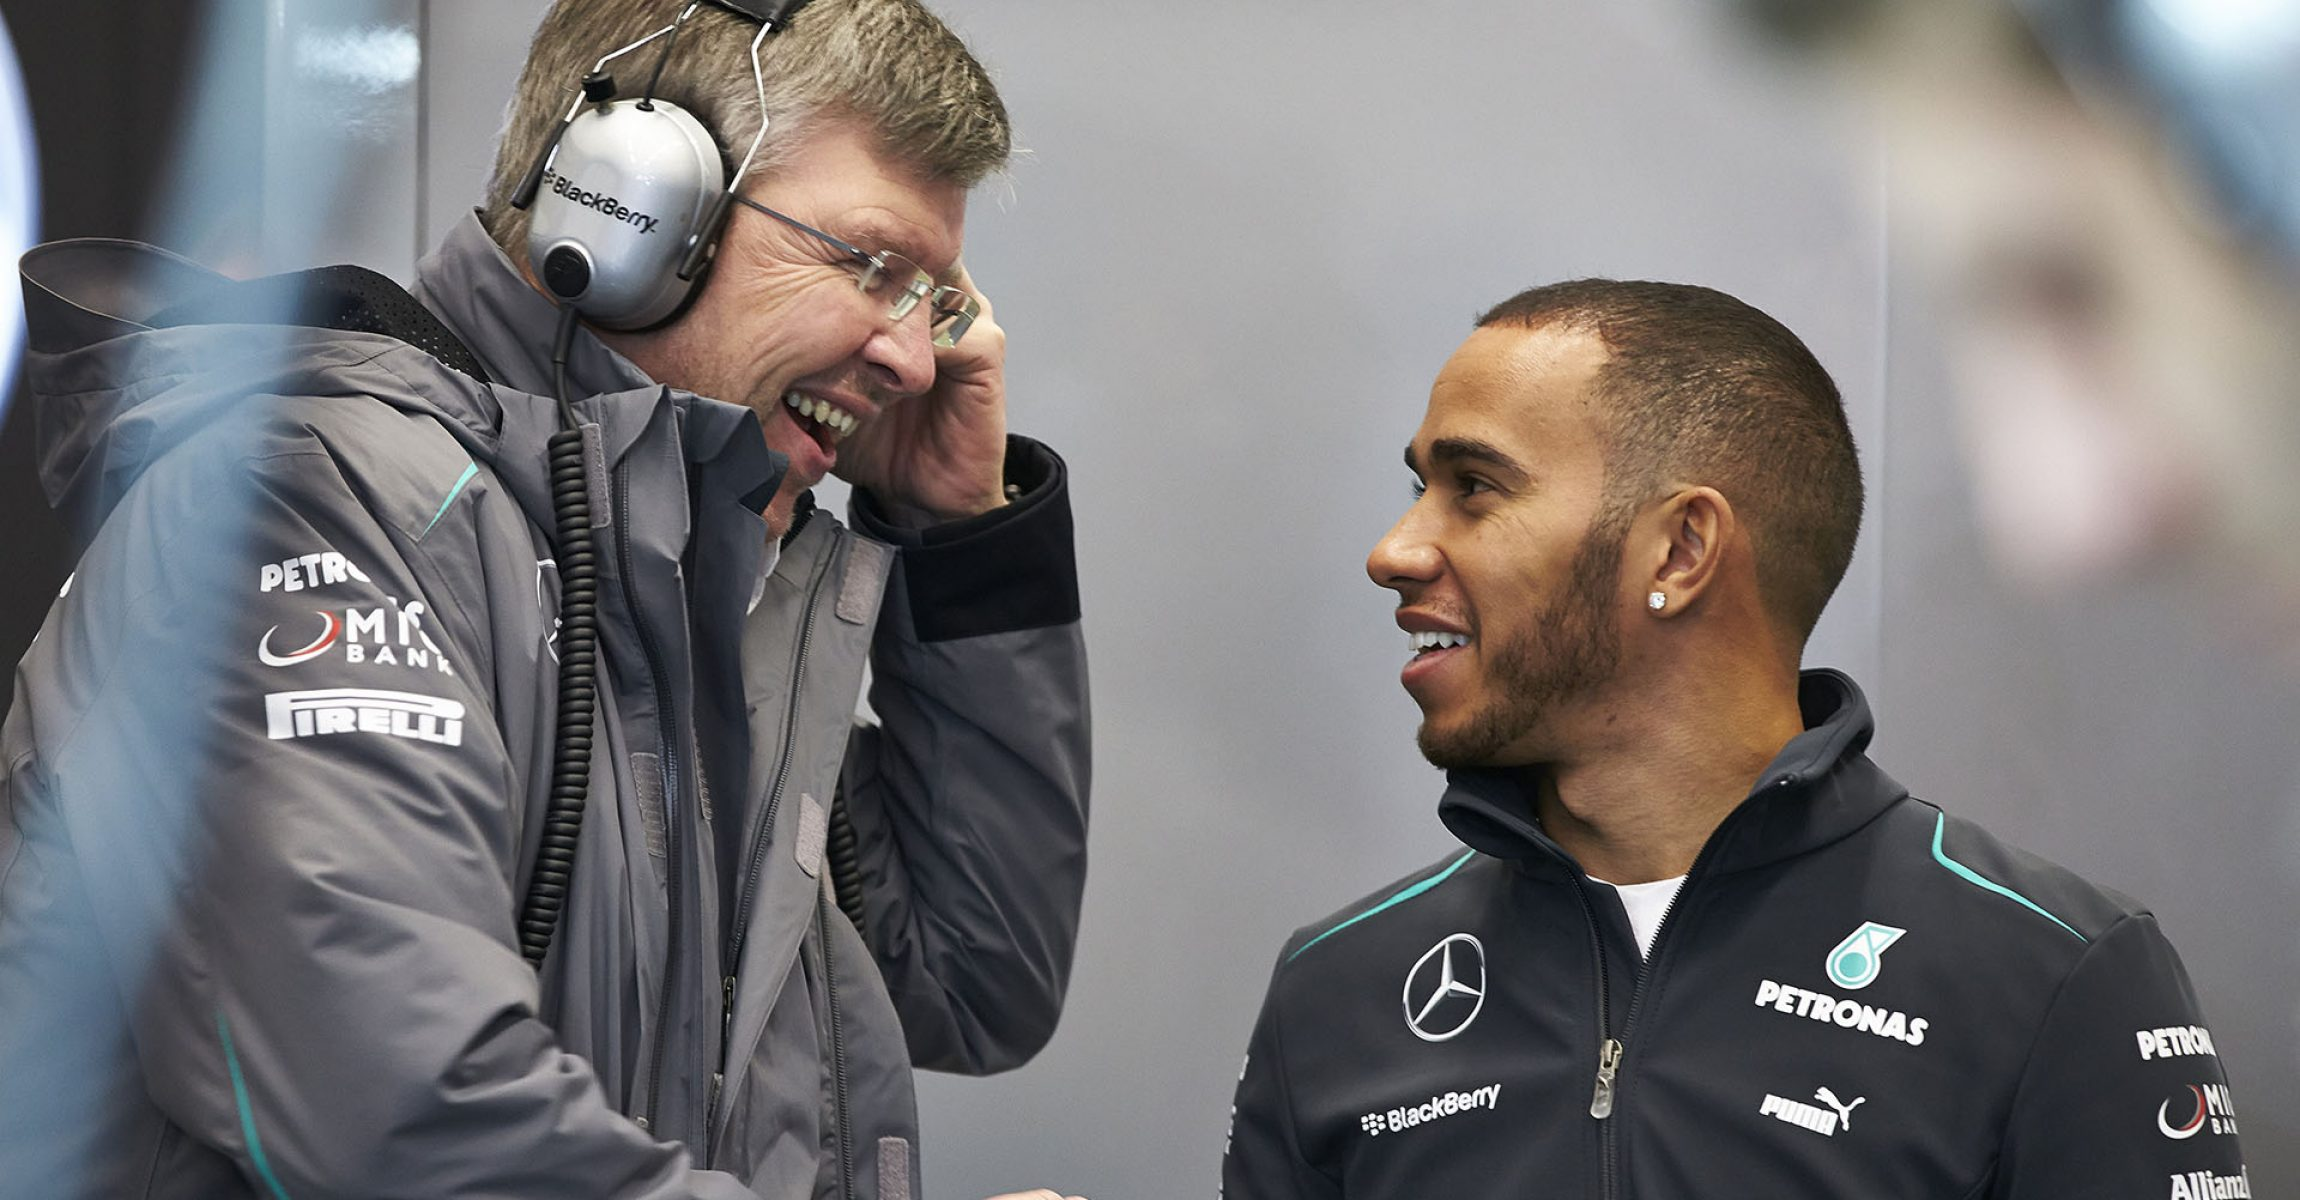 Ross Brawn and Lewis Hamilton at the launch of the team's 2013 Formula One car. Lewis joined Mercedes-AMG Petronas Motorsport for the 2013 season.